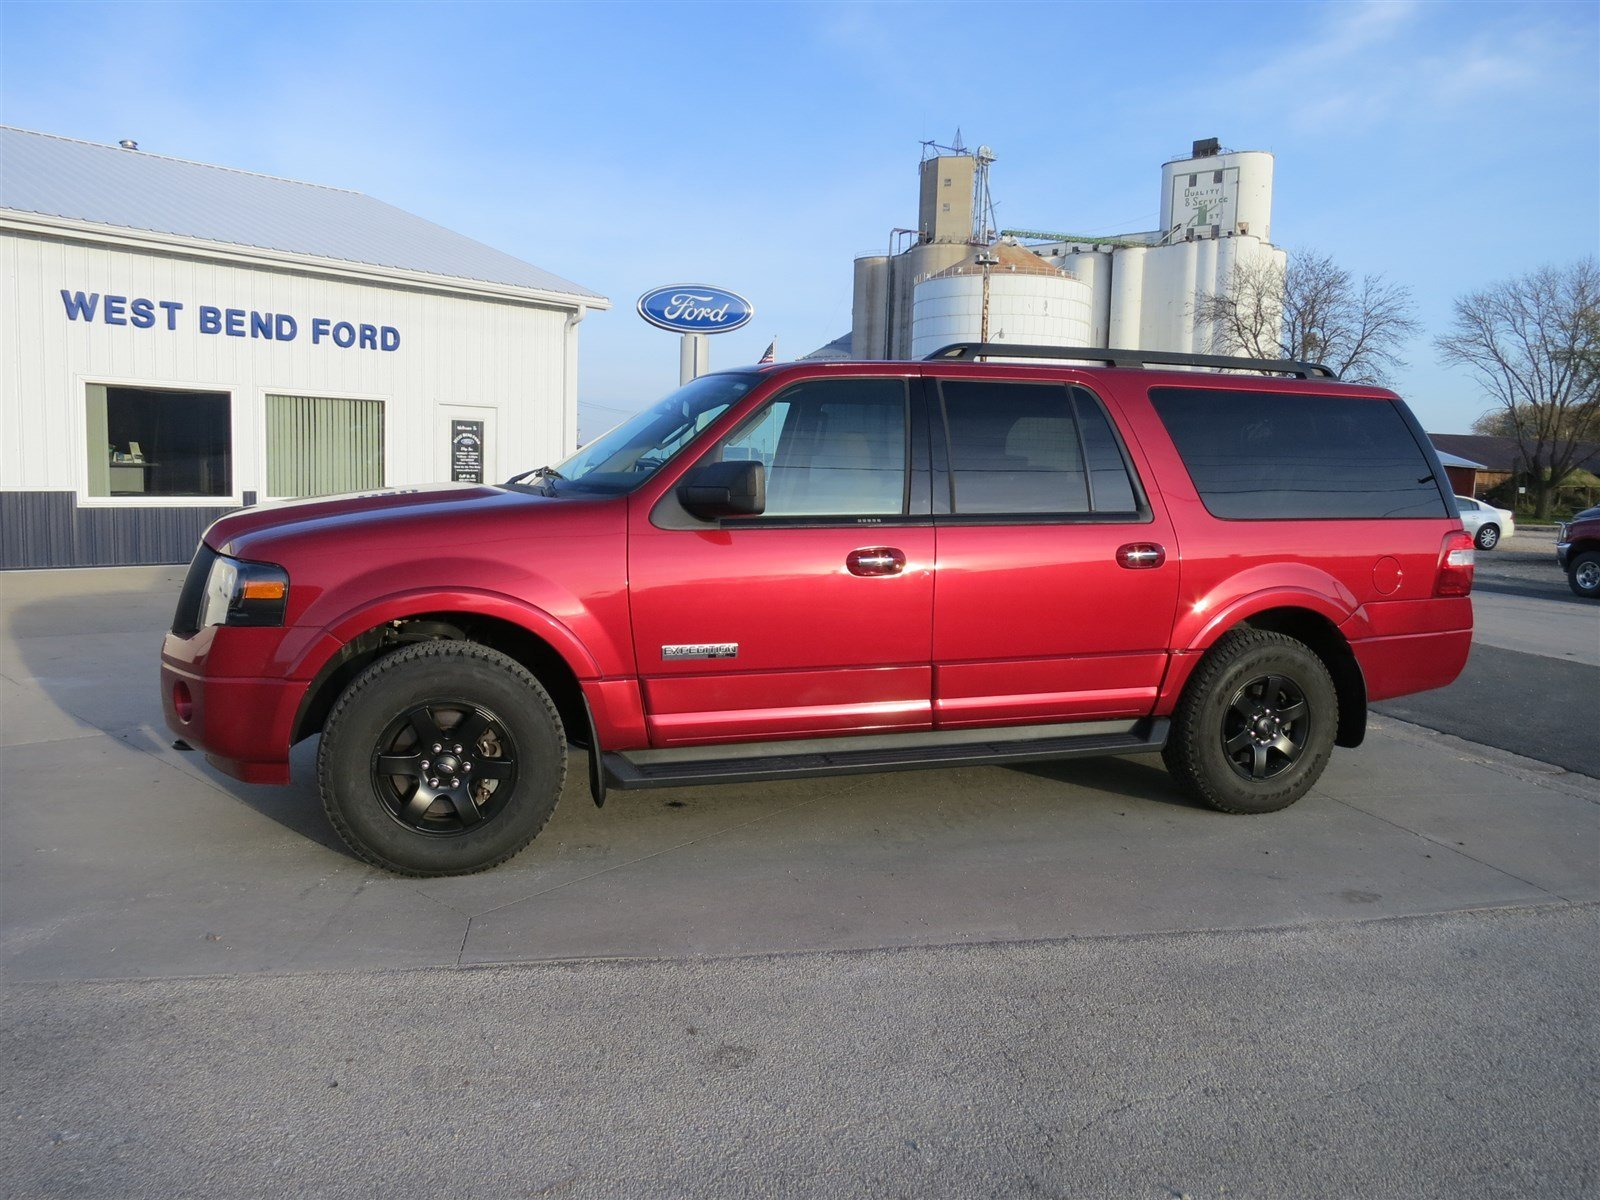 2008 Ford Expedition EL XLT SUV 4WD